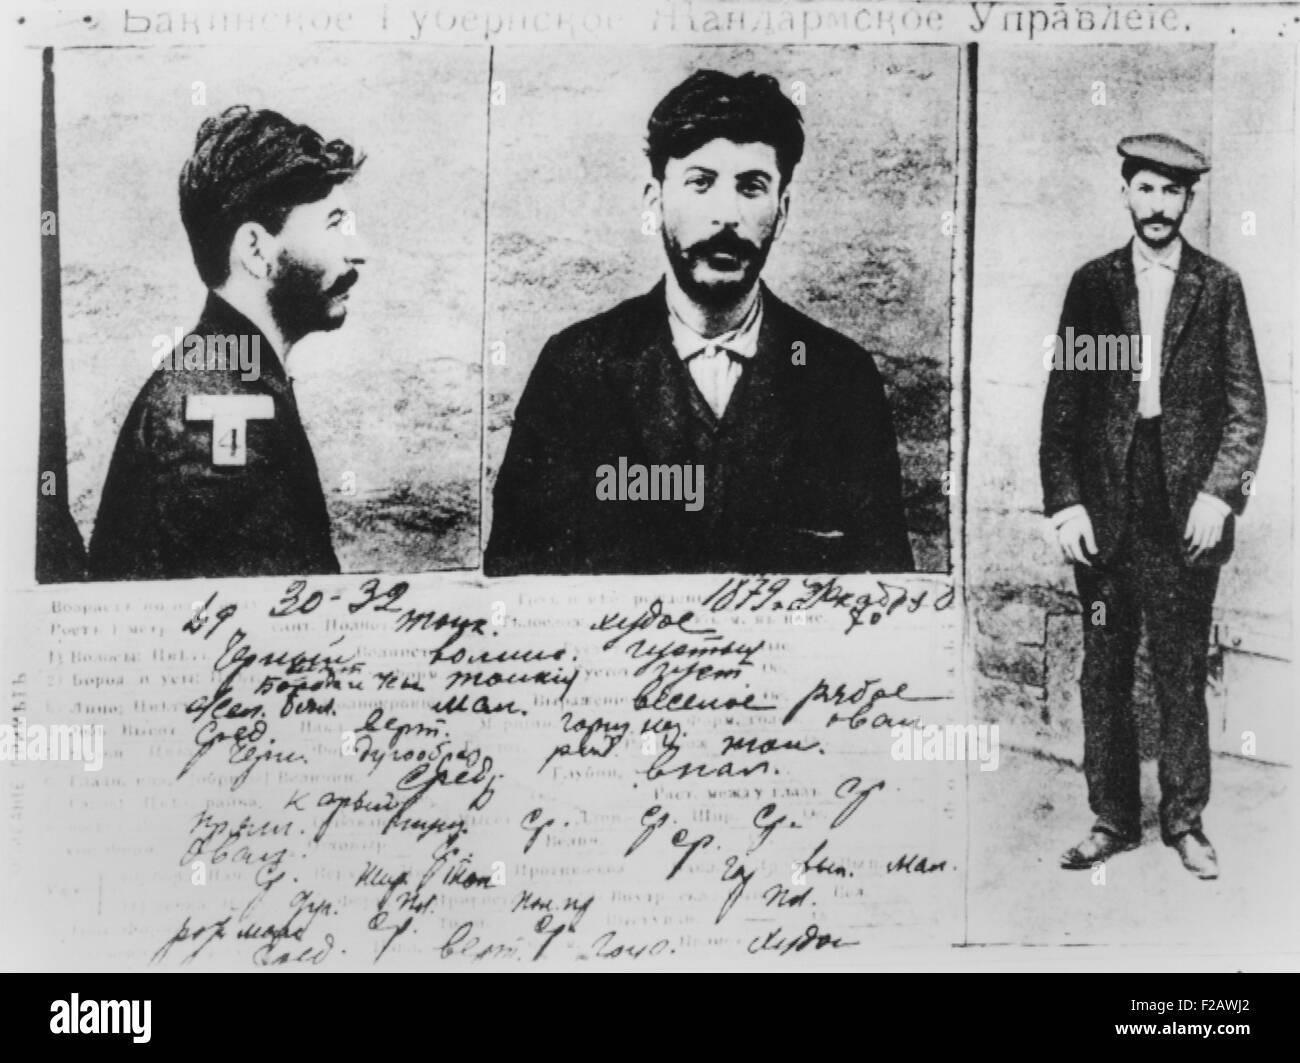 Josef Stalin's registration card of Political Police Administration of the Province of Baku, Russia. Ca. 1910. - Stock Image